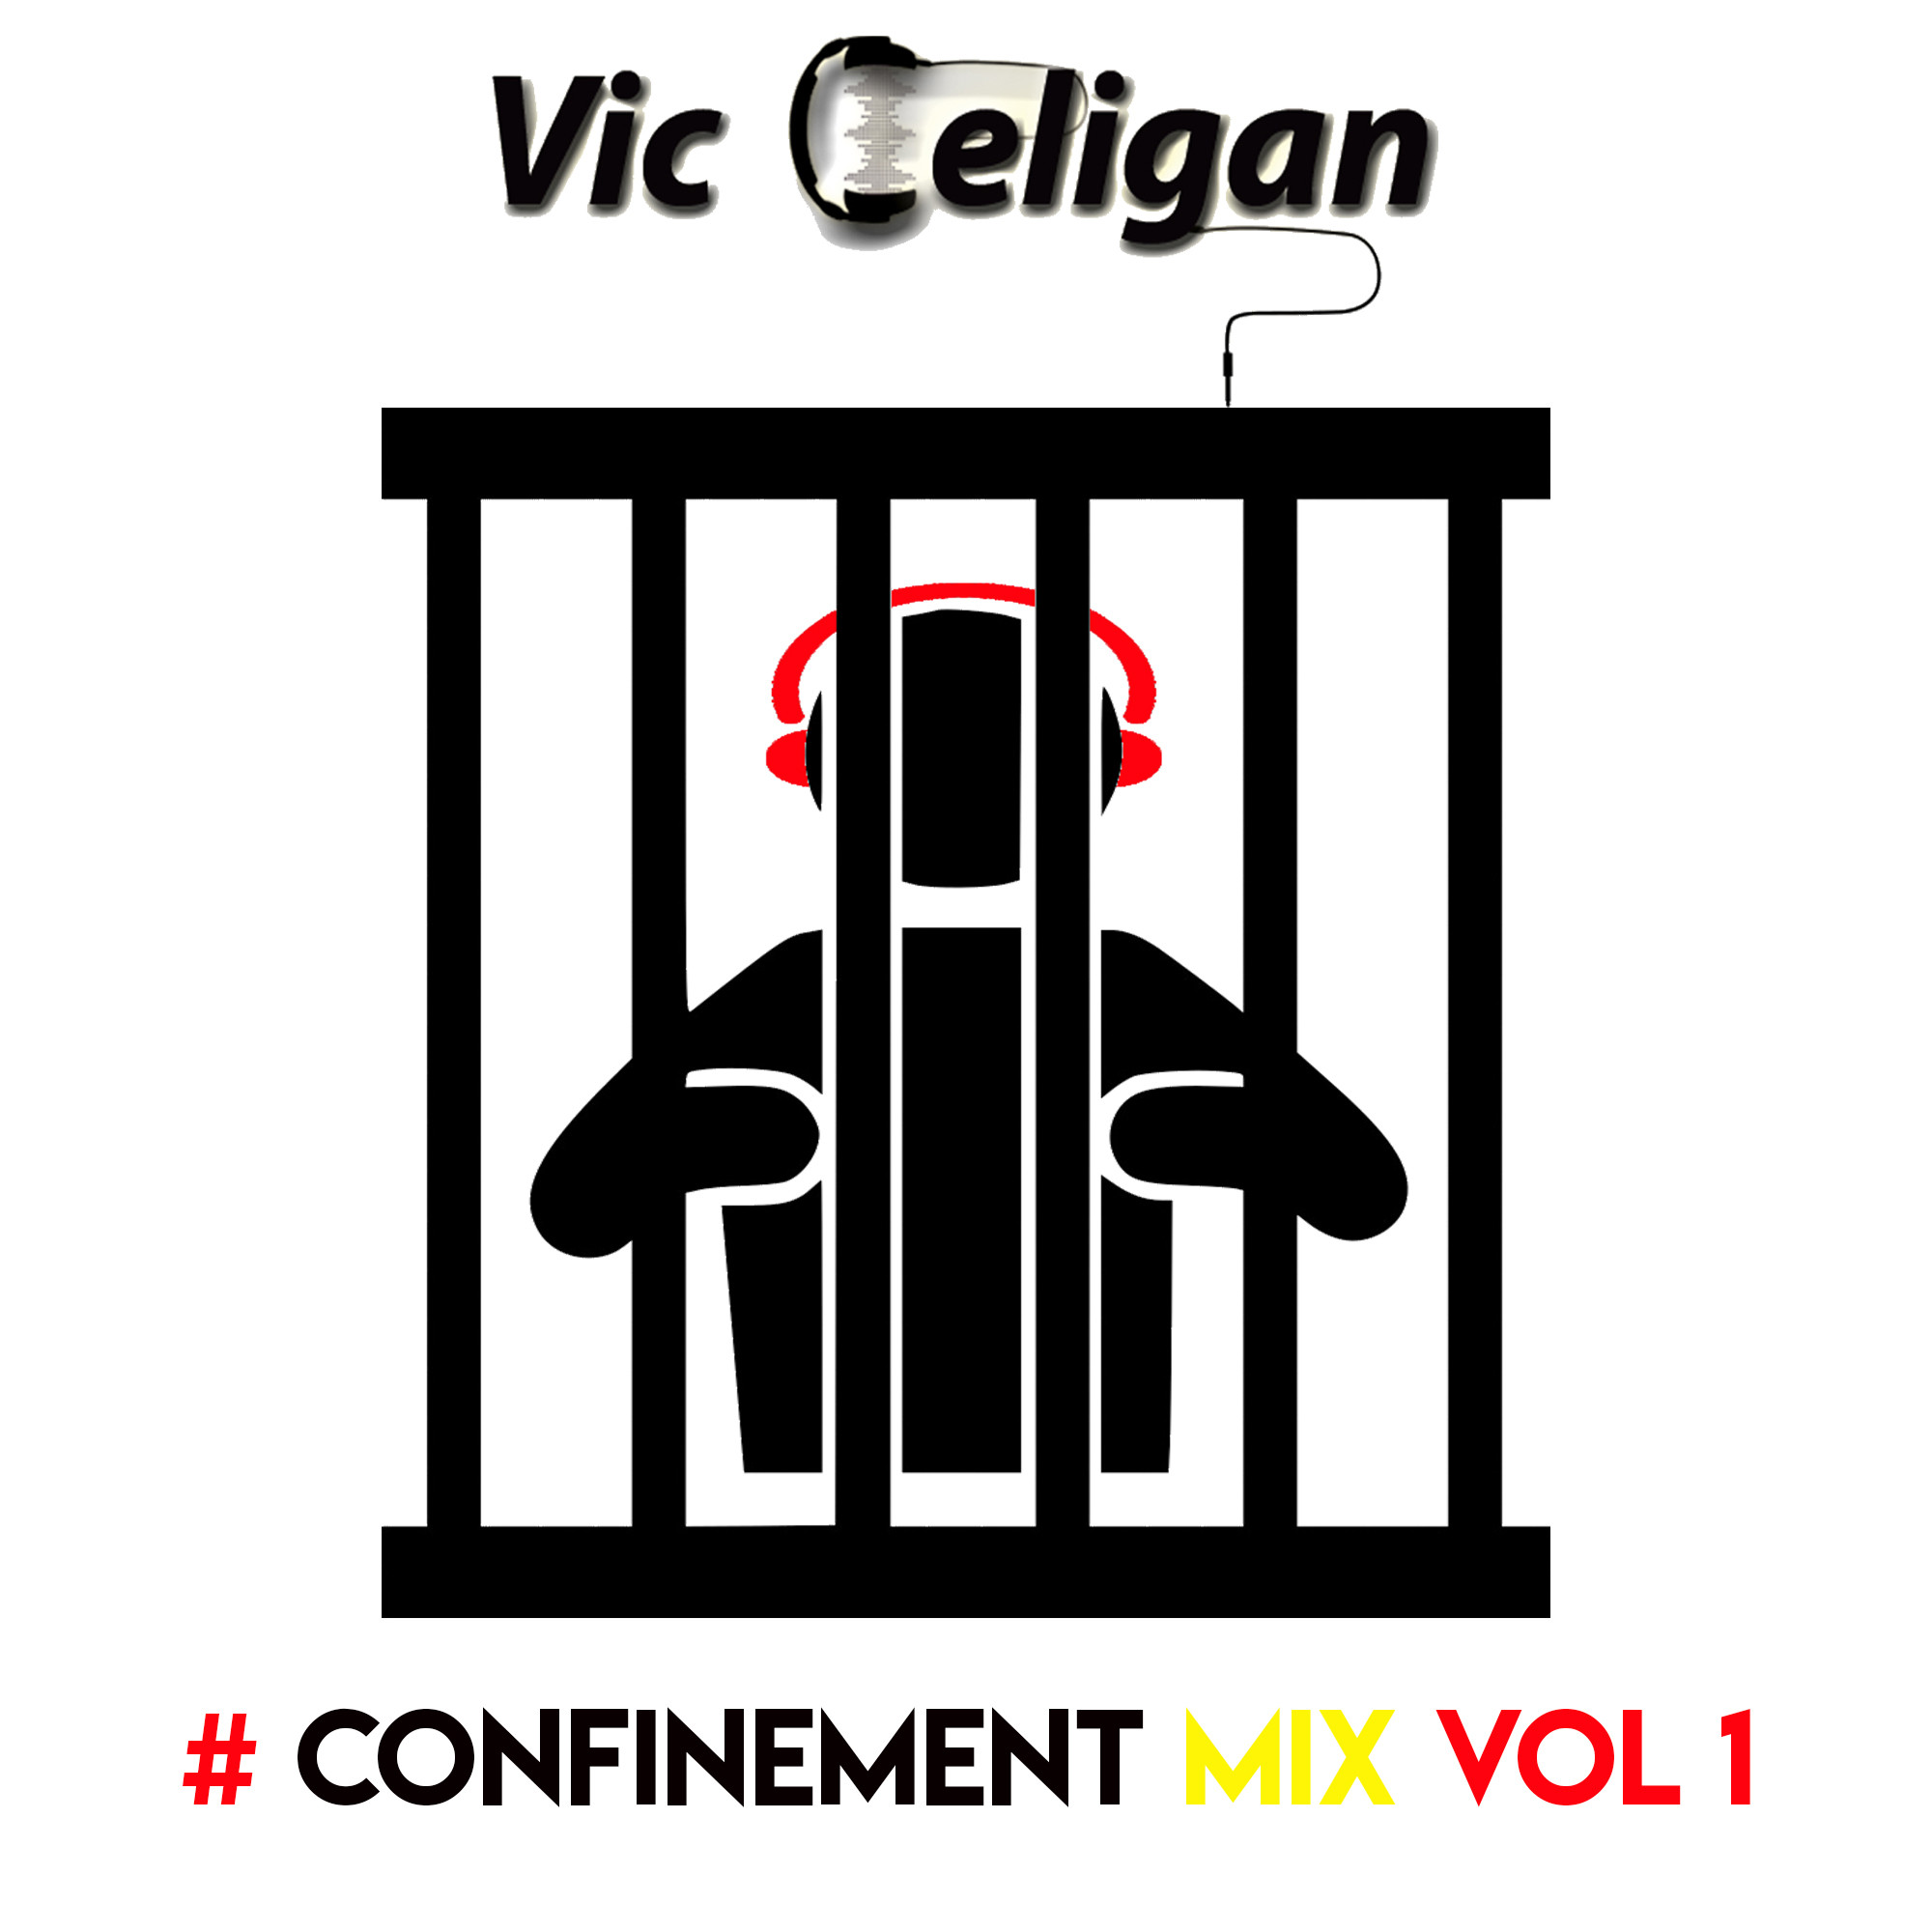 #Confinement Mix Vol 1